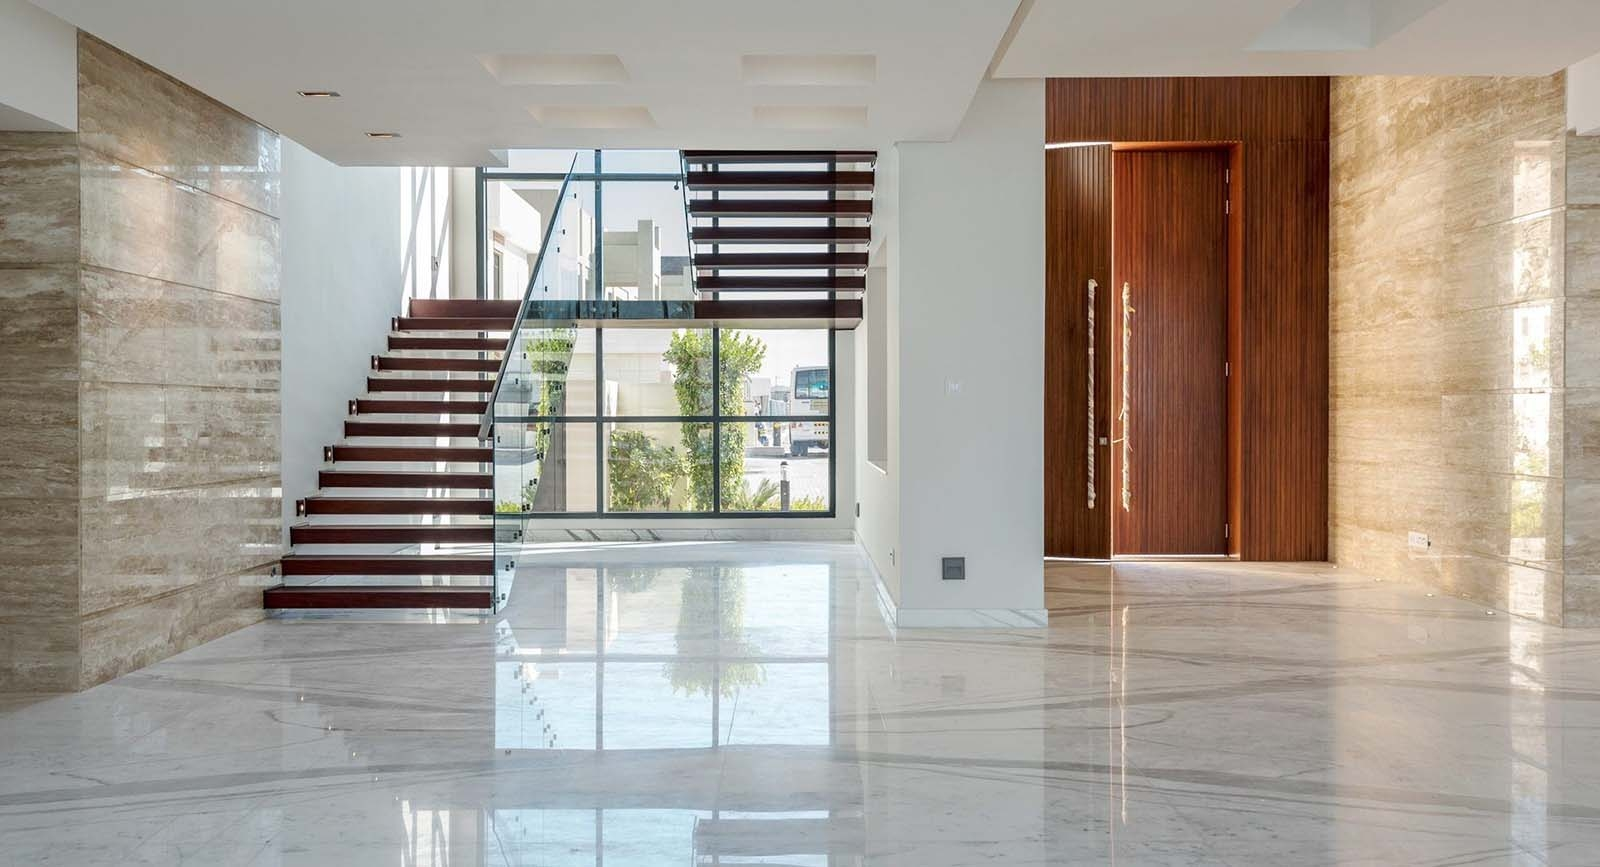 Modern Staircase Design Contemporary Stair Design Ideas   Modern Staircase Designs For Homes   Spiral   Steel   Minimalist   Concrete   Awesome